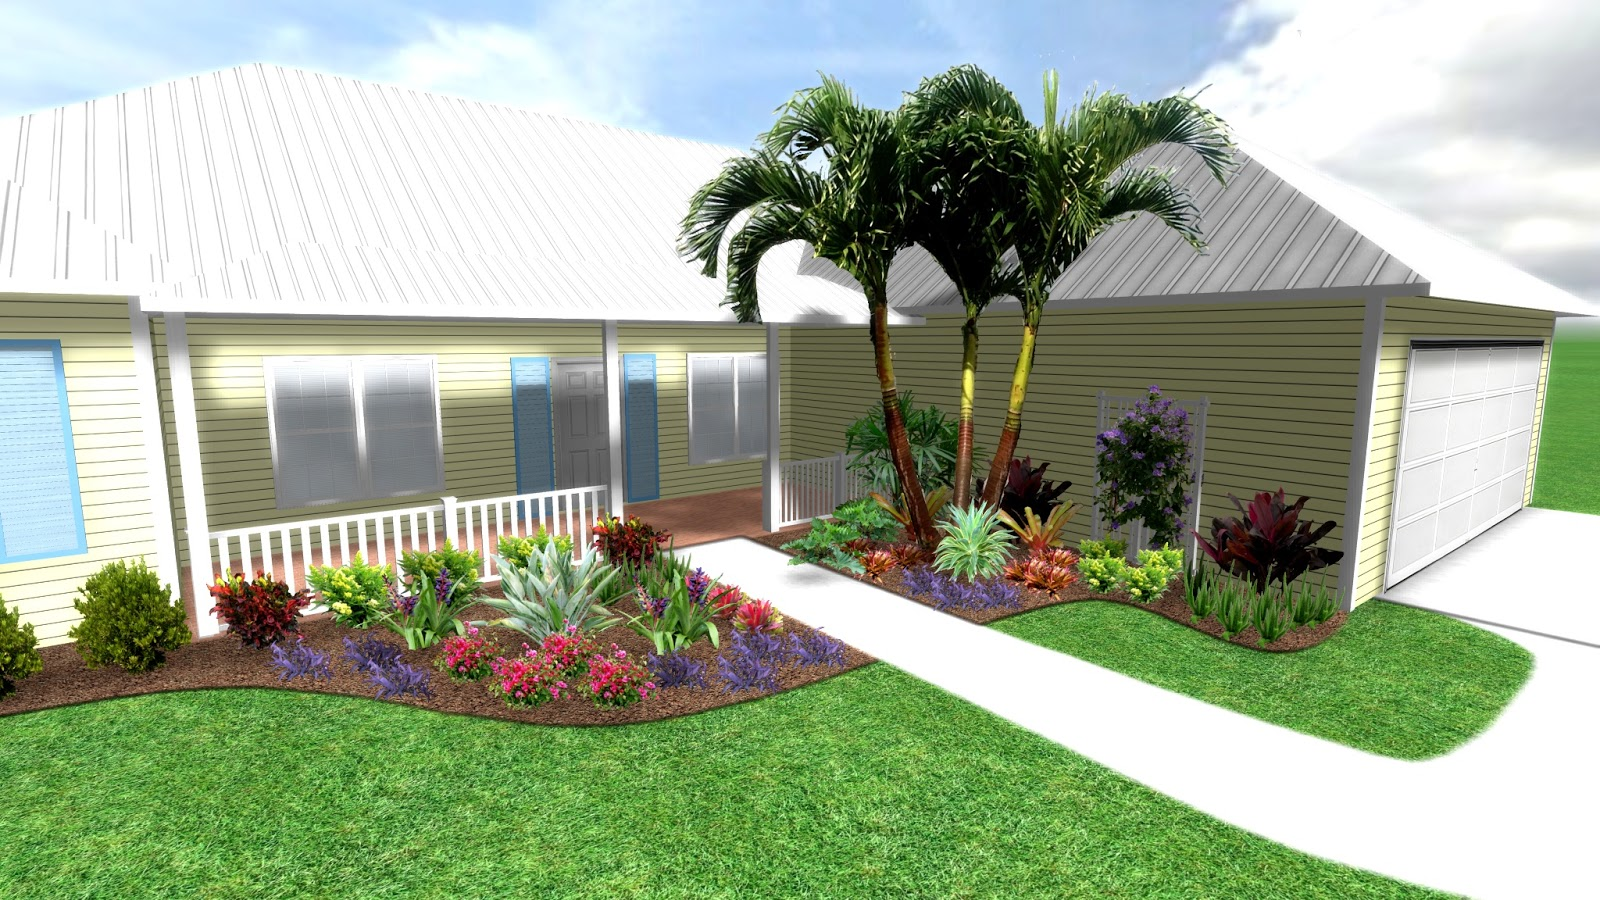 Tropical plant design for front yard landscape design in for Home lawn design